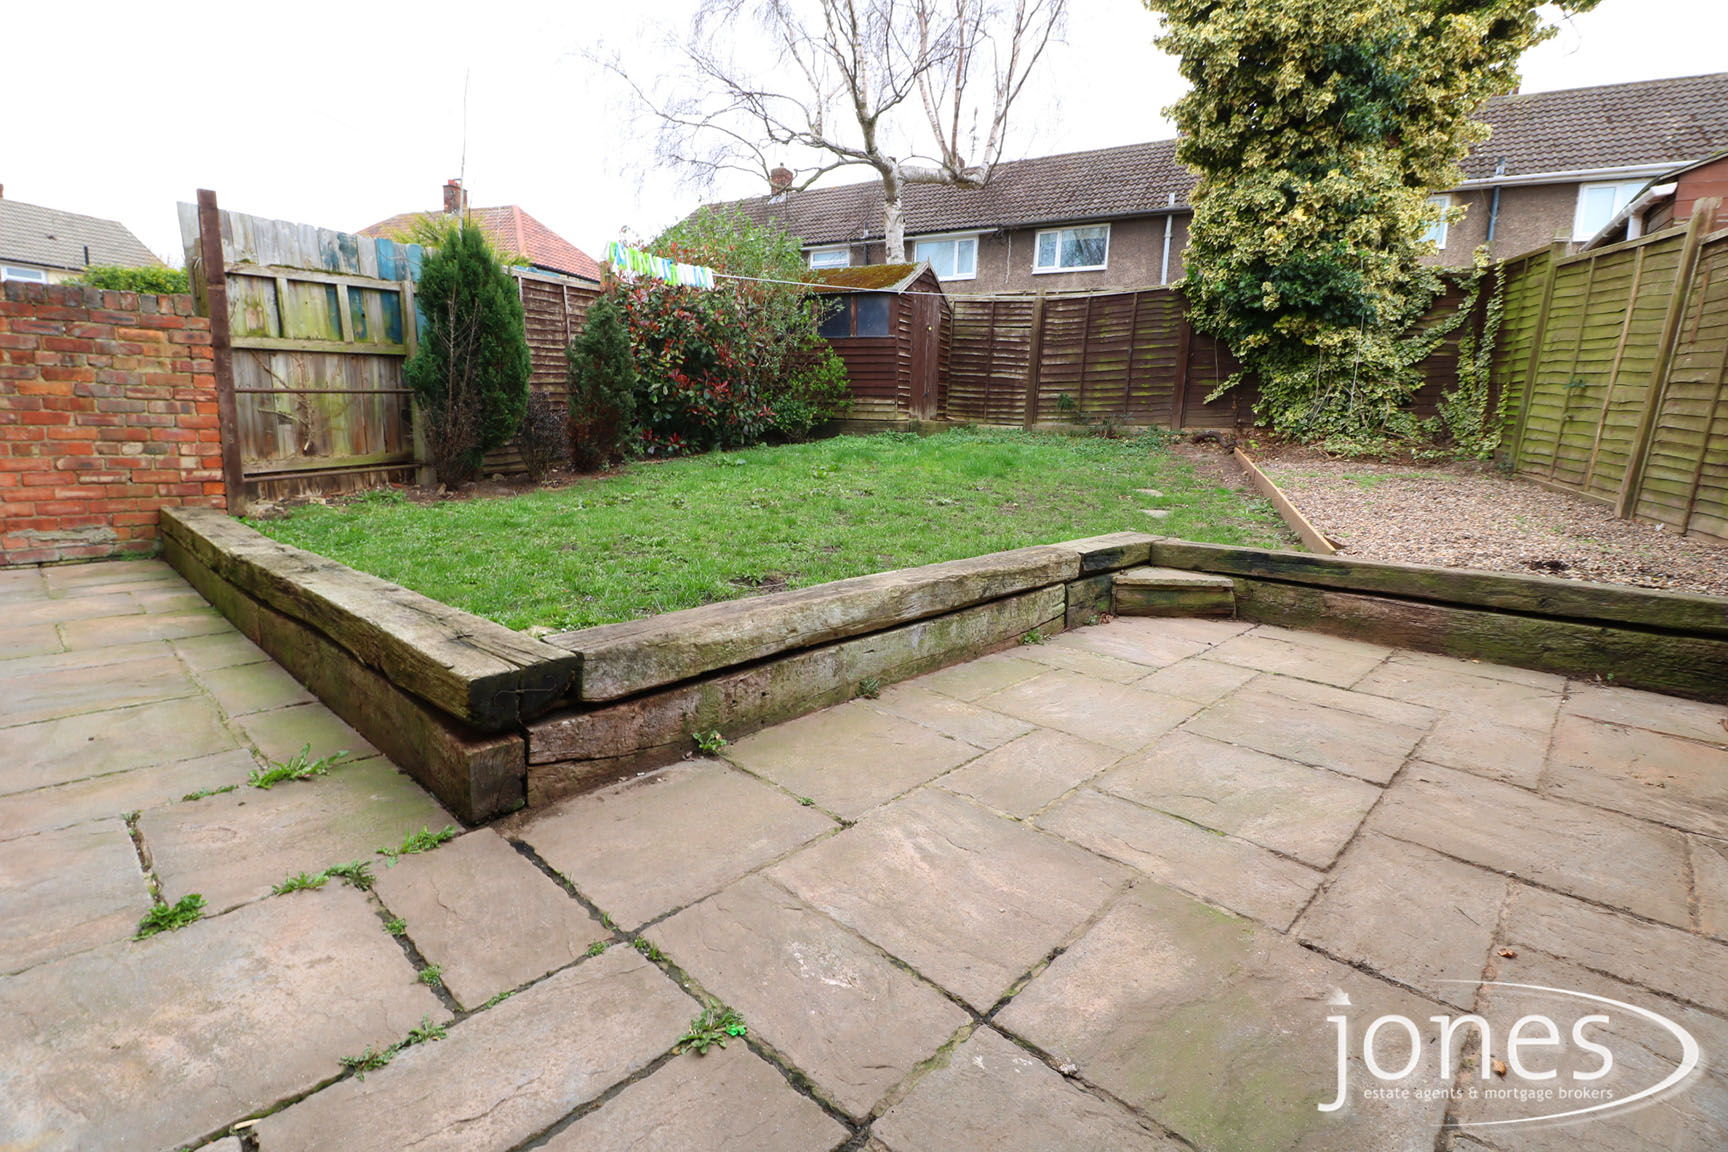 Home for Sale Let - Photo 10 Keats Road, Normanby, Middlesbrough, TS6 0RP